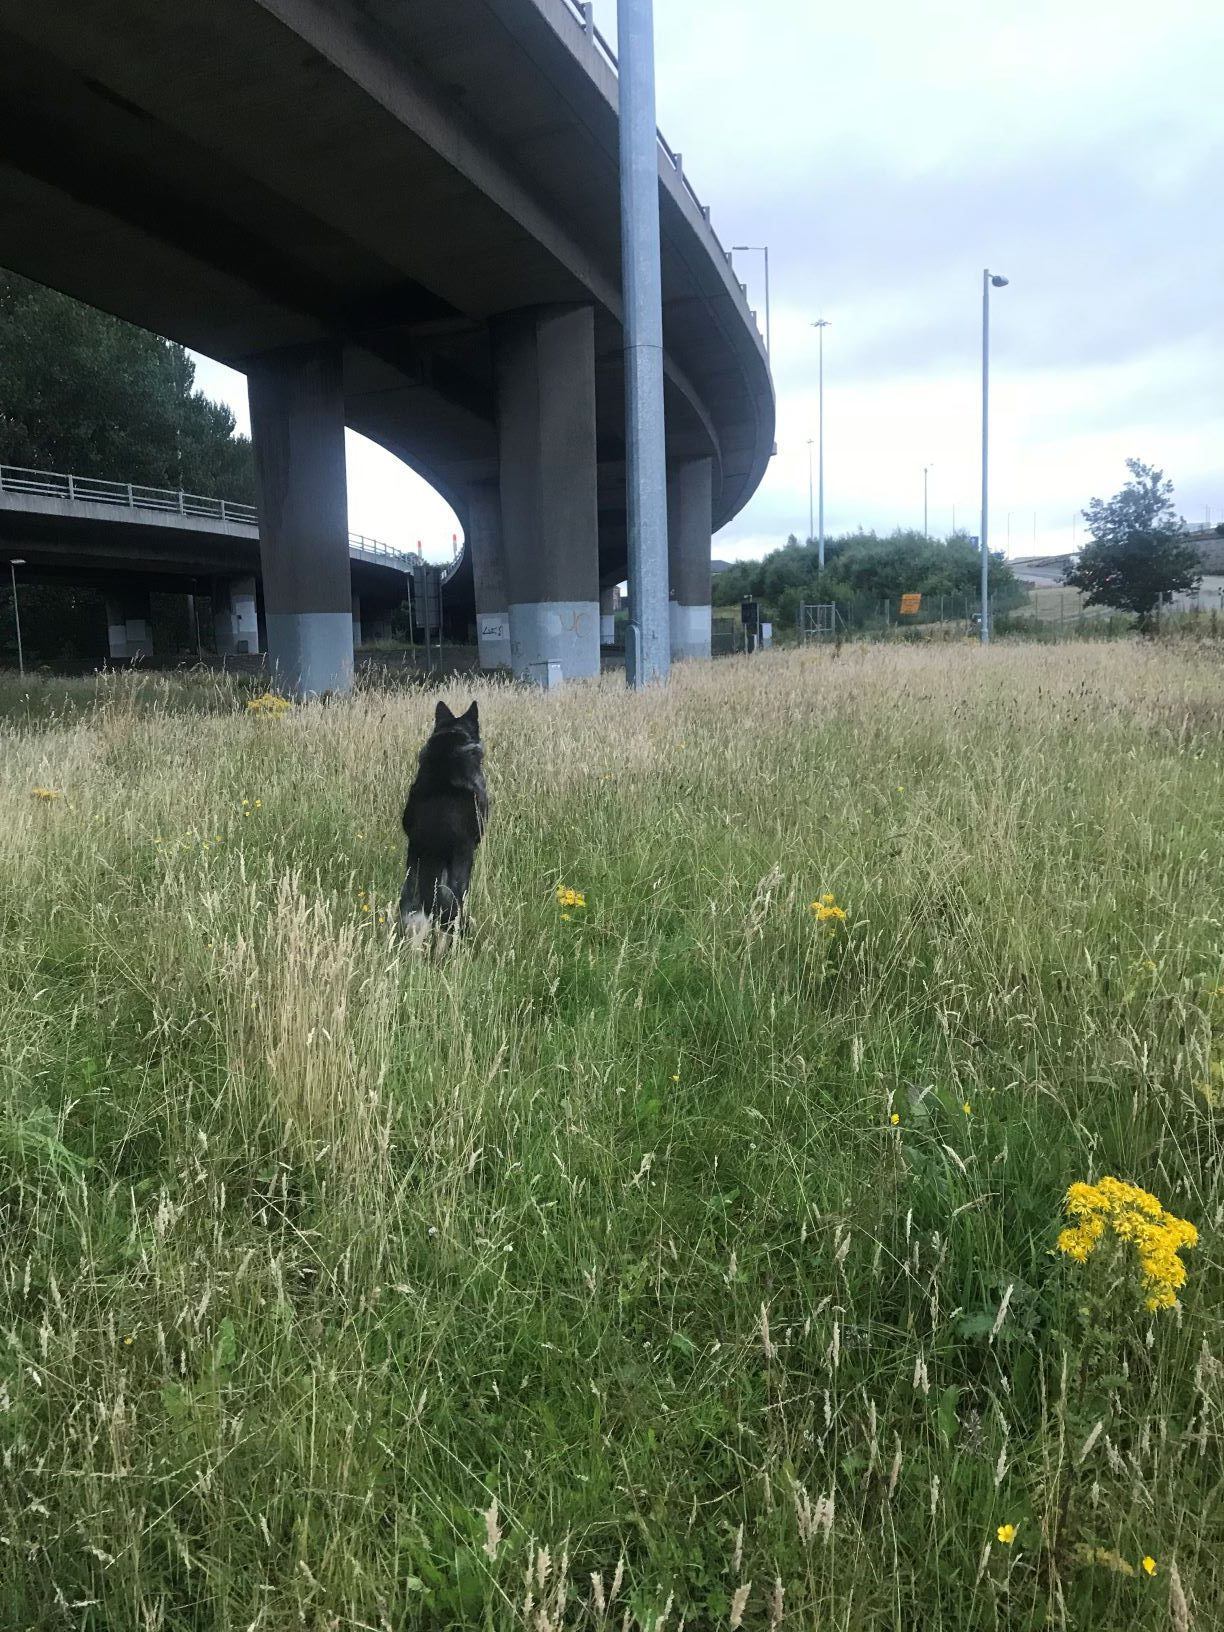 The same scene - tan and green field with yellow flowers and looming overpass. The dog is now mid-leap, facing away from the camera as she bounces after a thrown pebble. Her fur is black, and her ears are two black triangles as she bounds through the tall grass.